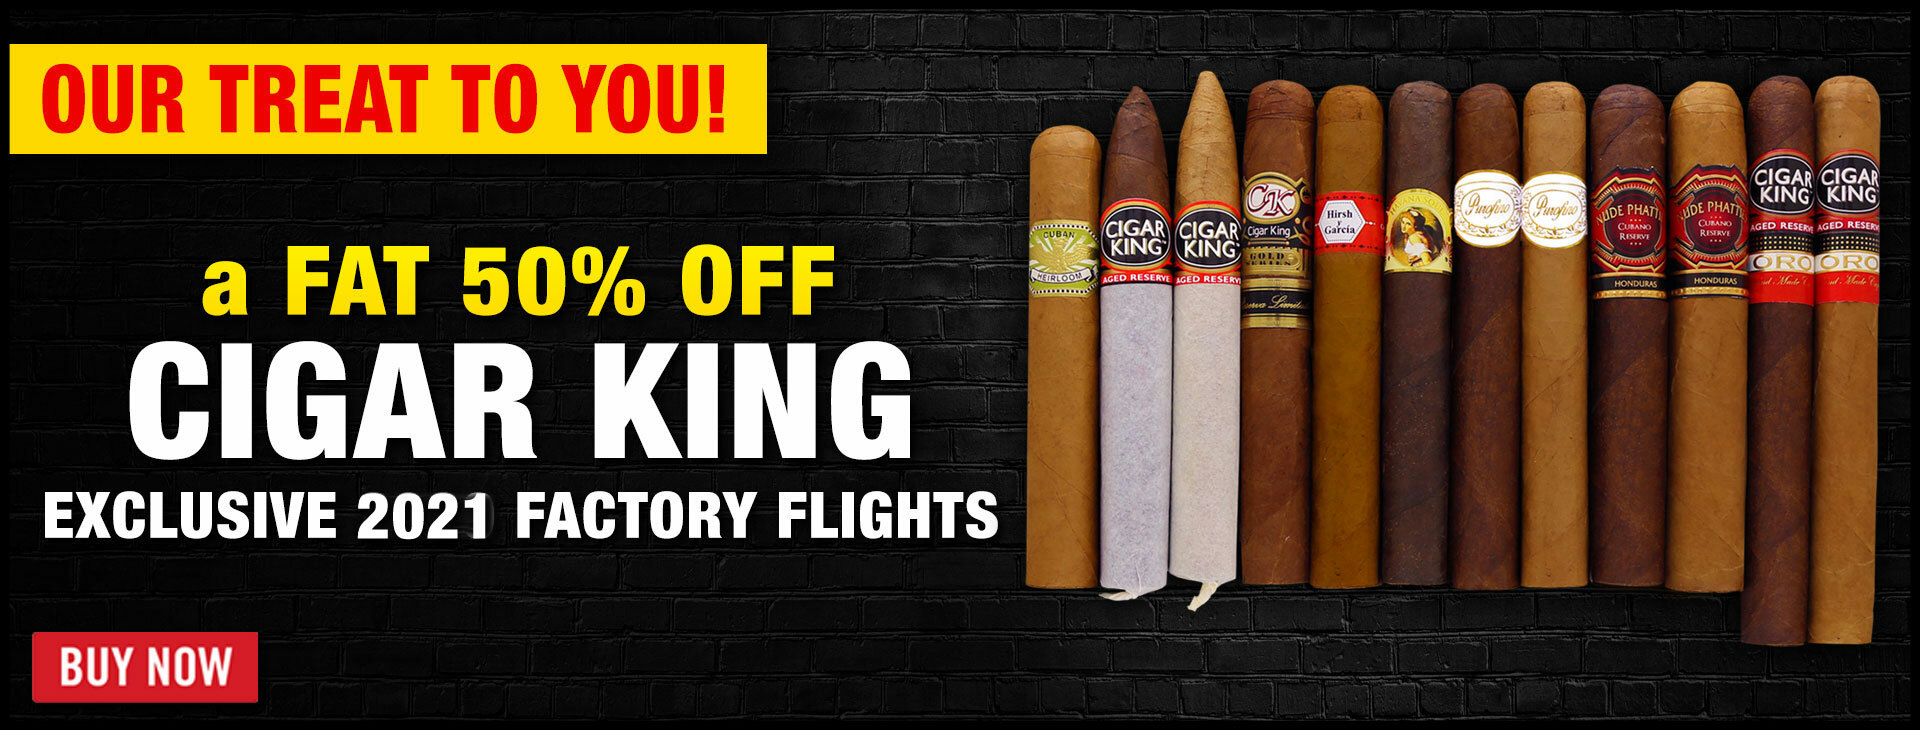 50% OFF: Cigar King 2021 Factory Flights